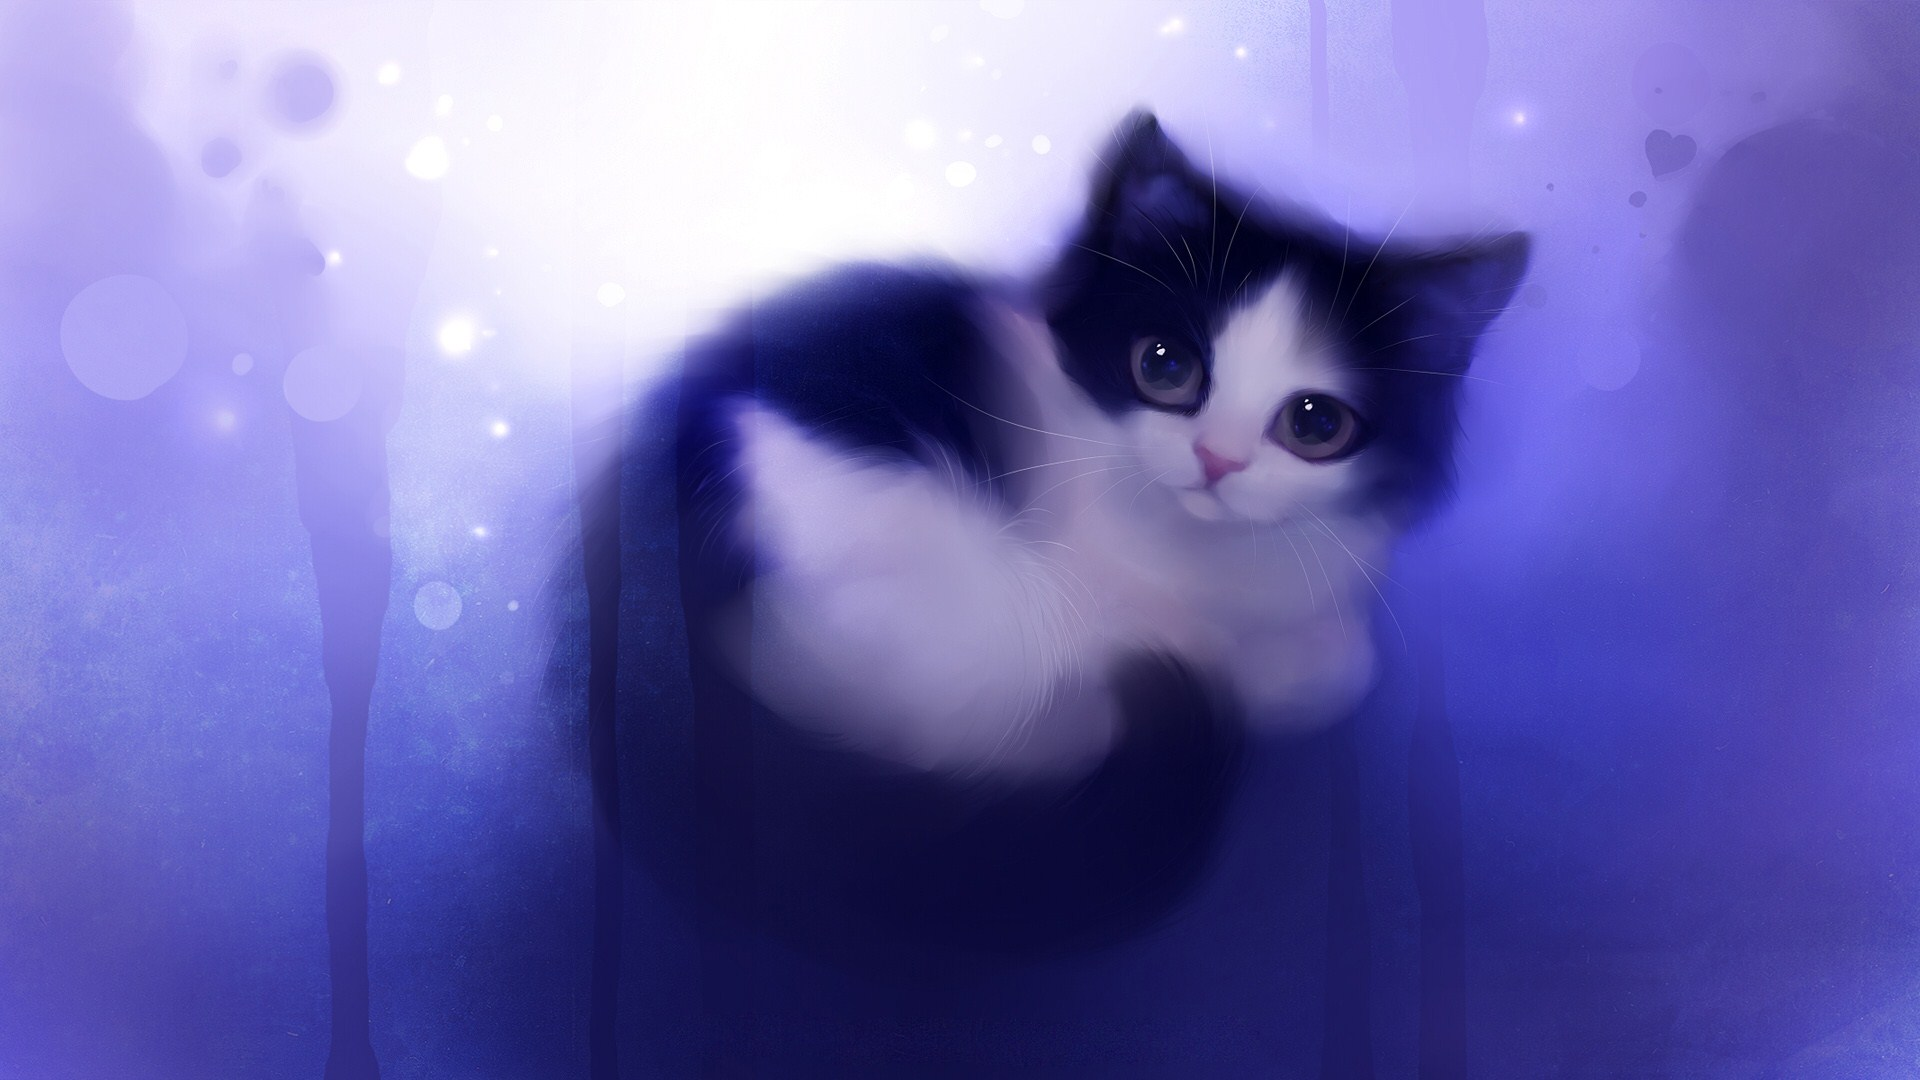 cat wallpaper cute wallpaper share this cute wallpaper on facebook 1920x1080